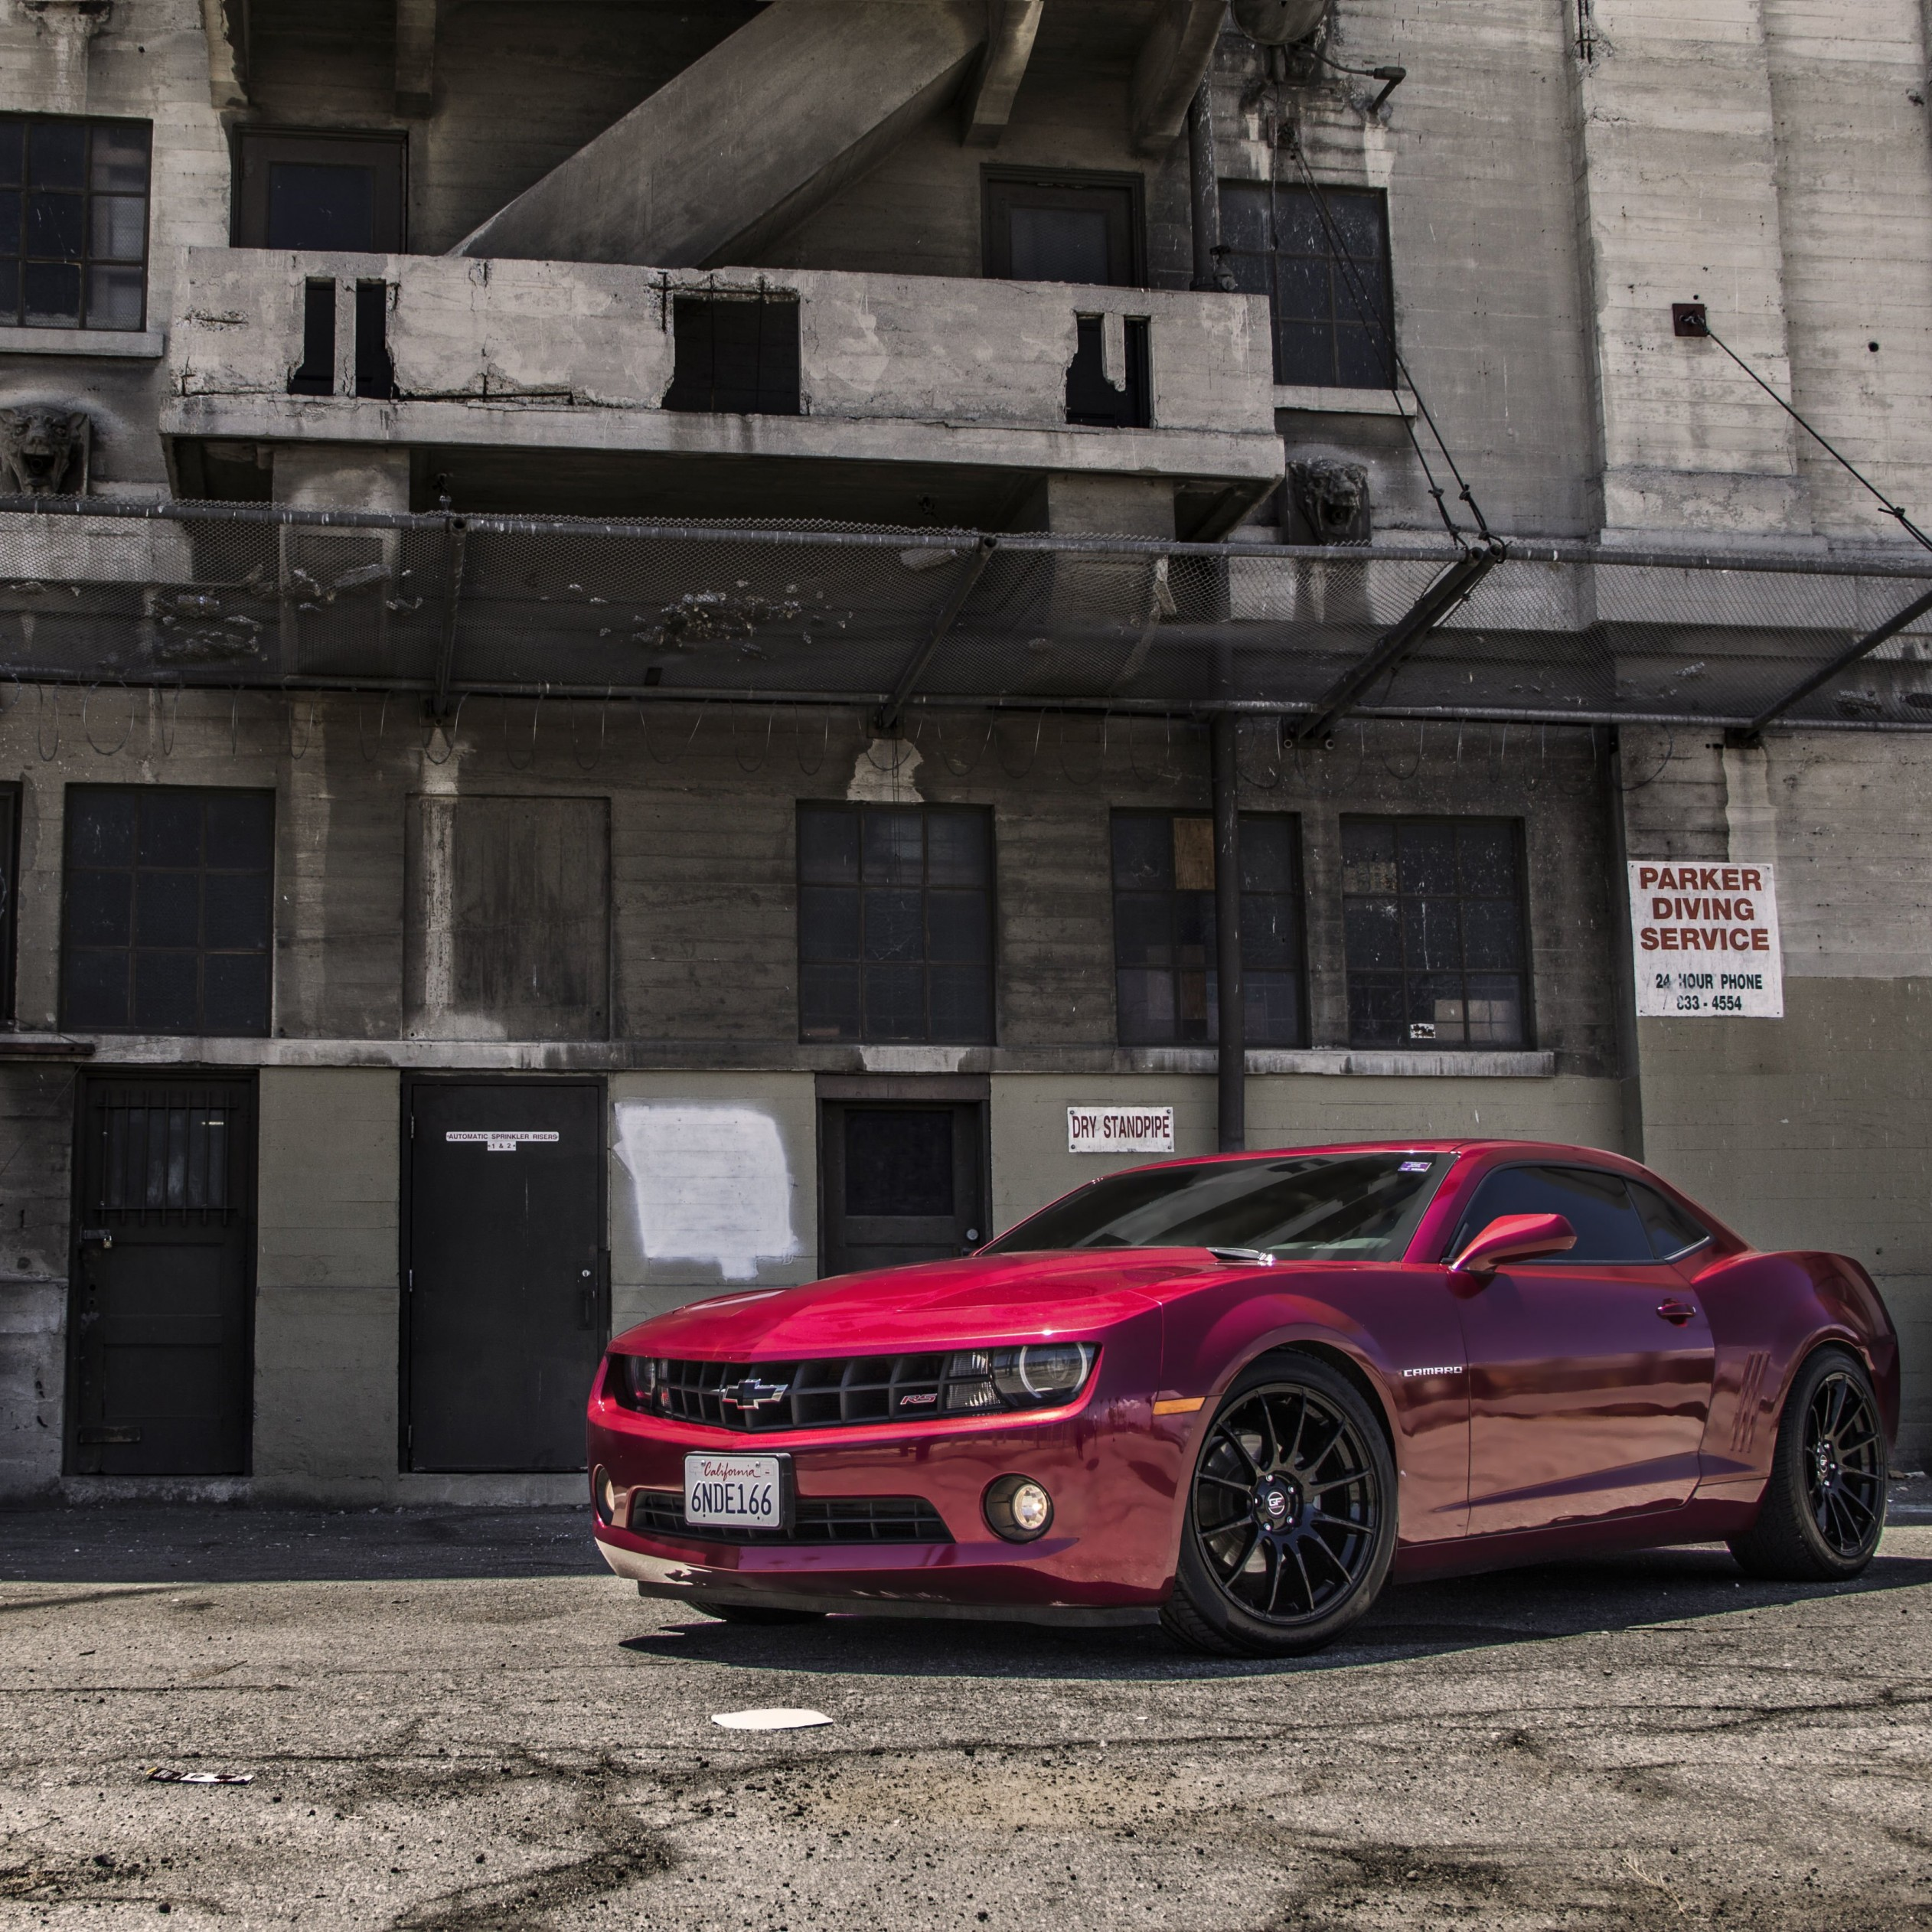 Red Chevrolet Camaro RS Wallpaper for Apple iPad mini 2